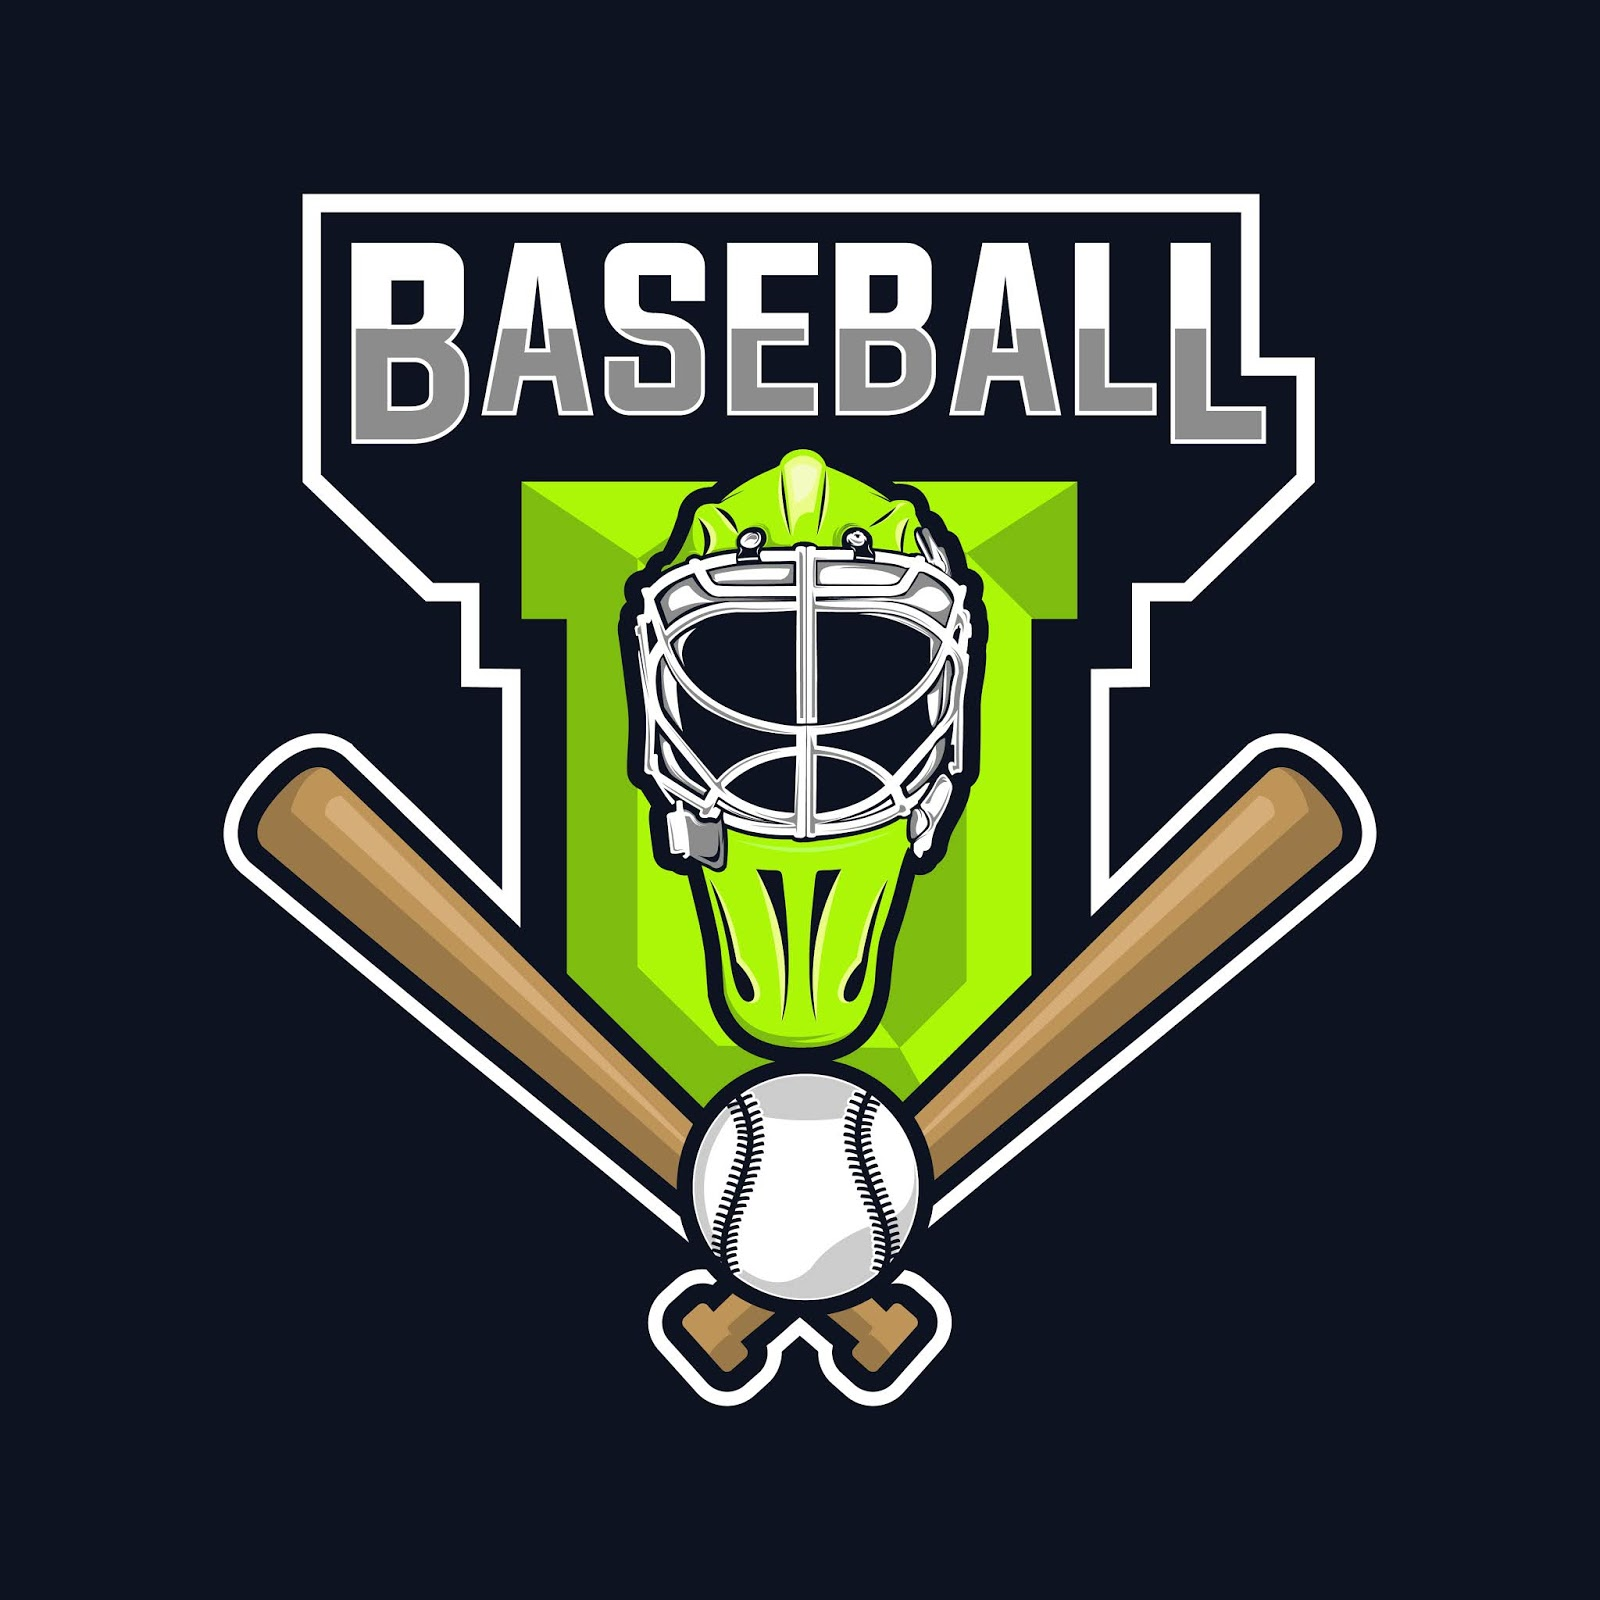 Baseball Logo Design Free Download Vector CDR, AI, EPS and PNG Formats